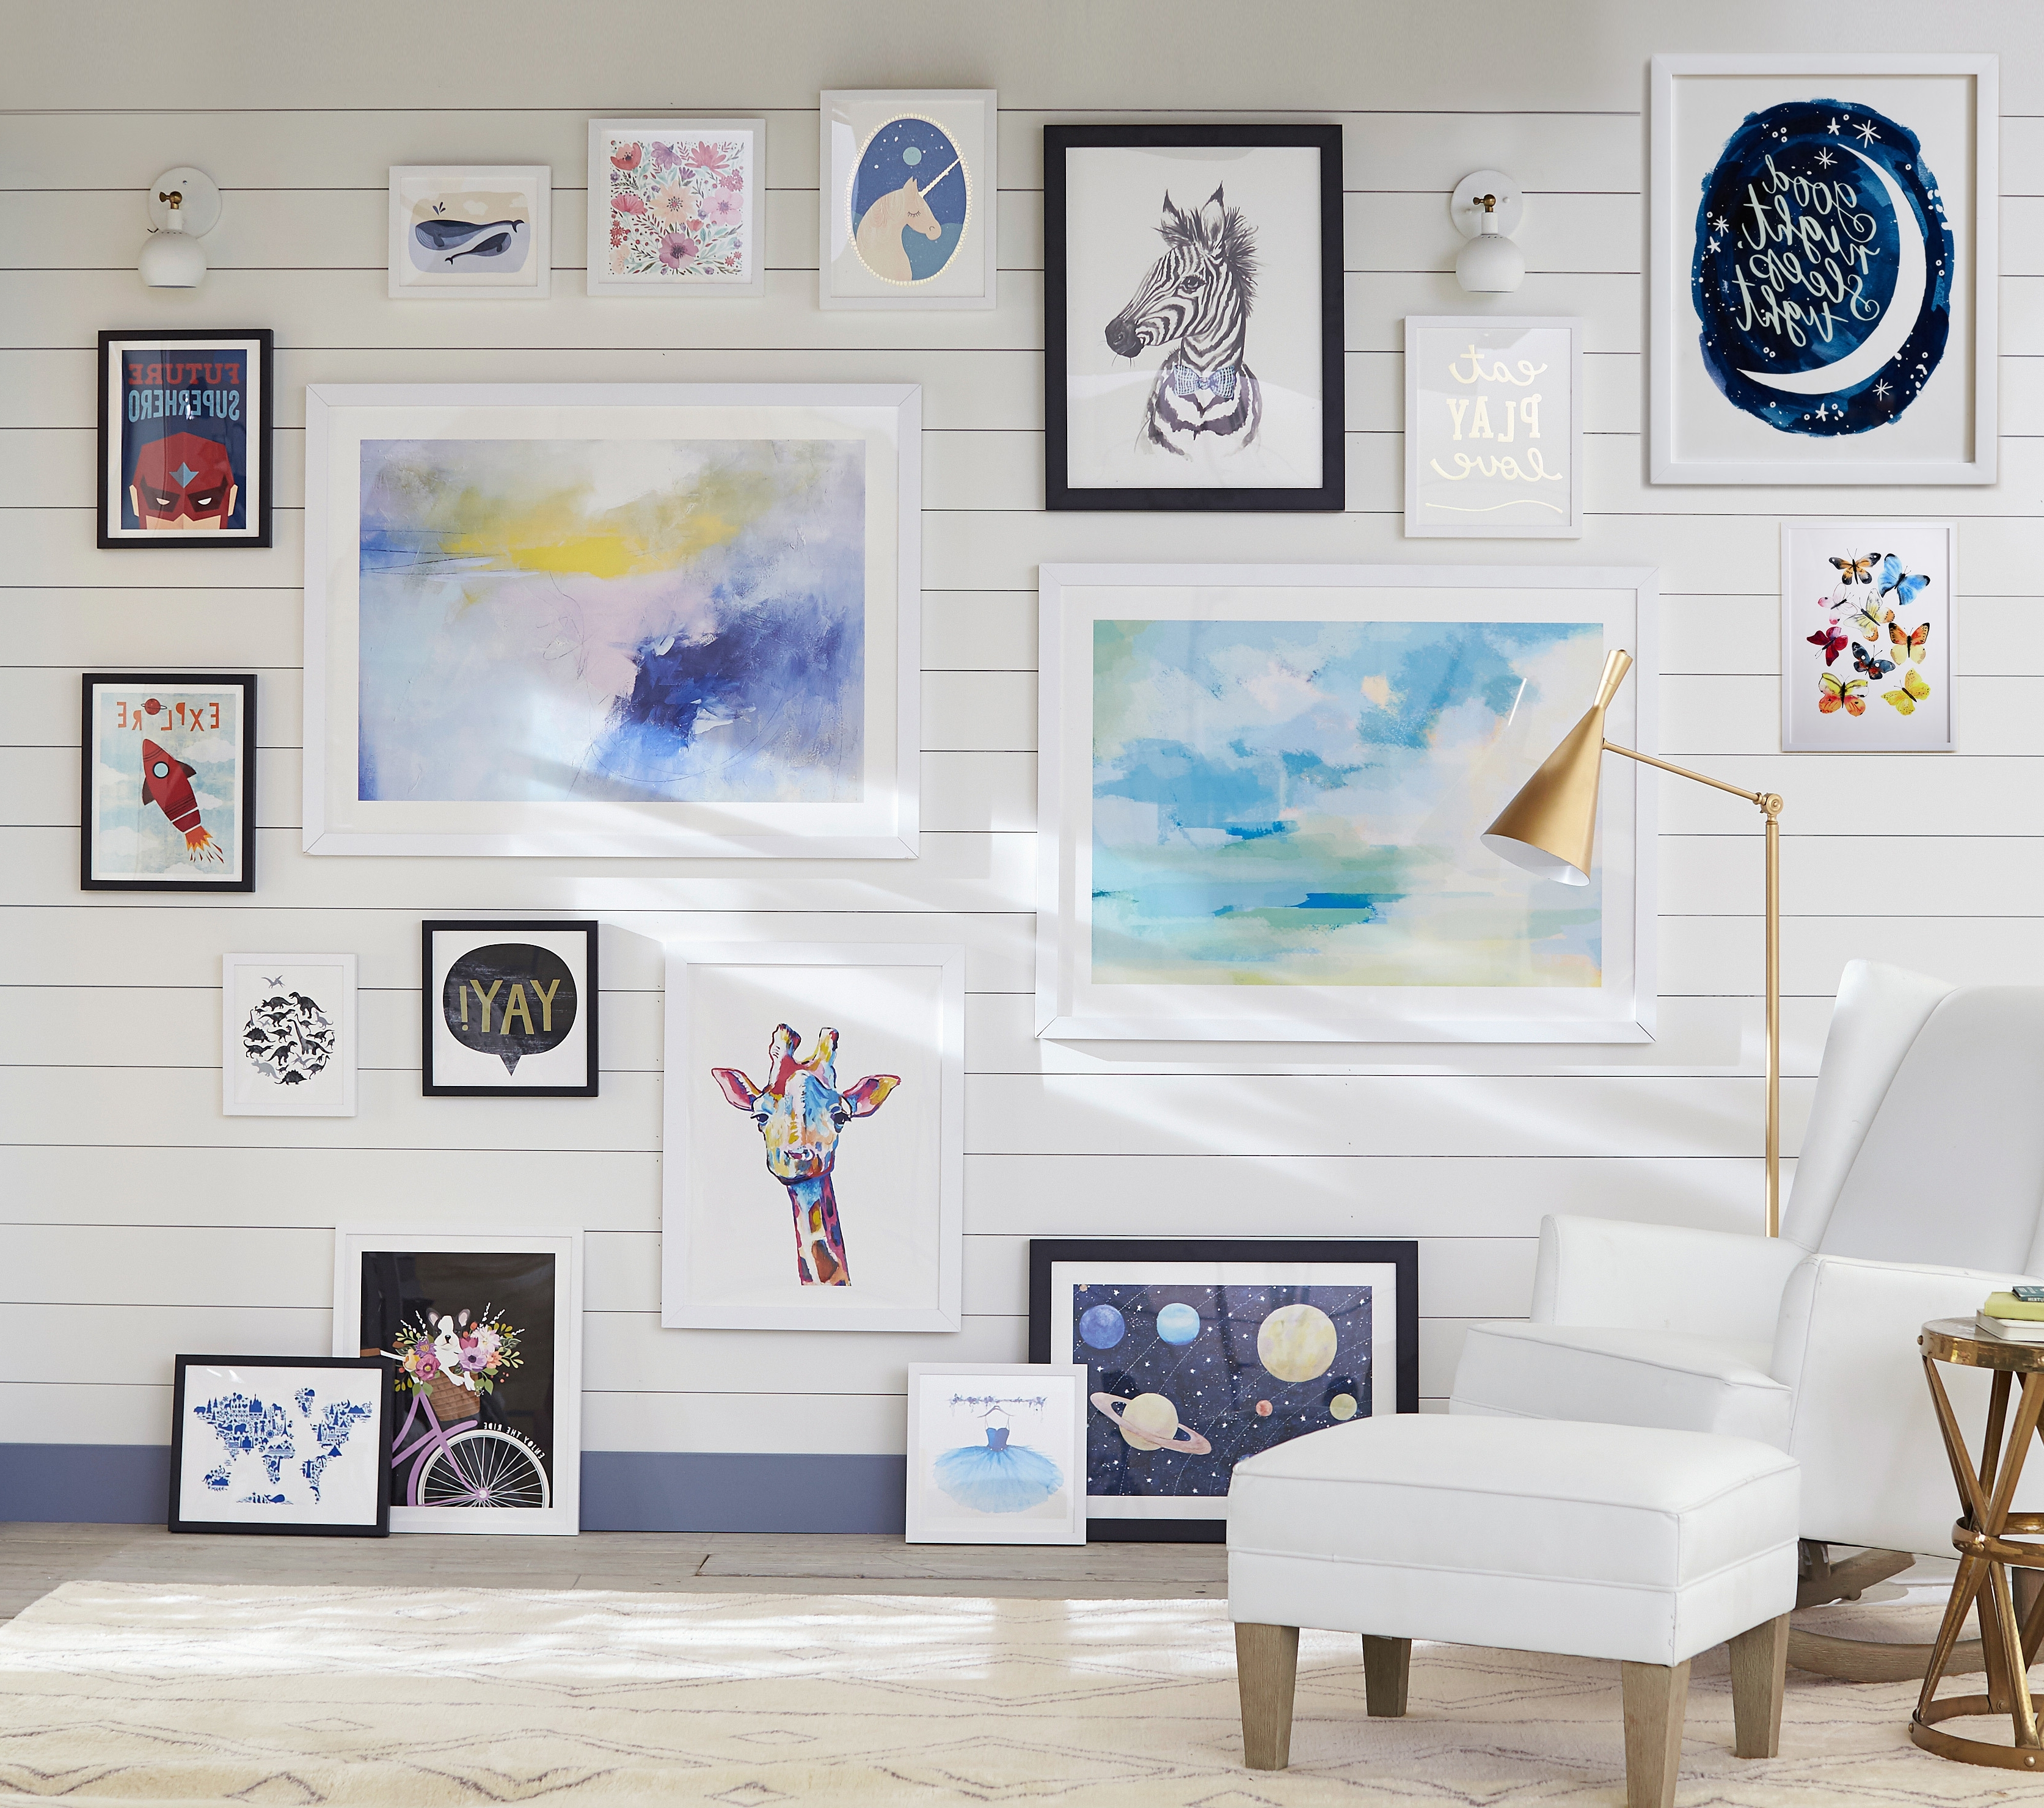 Trendy Pottery Barn Kids And Pbteen Debut Exclusive Wall Art Collection Throughout Pottery Barn Wall Art (View 11 of 15)